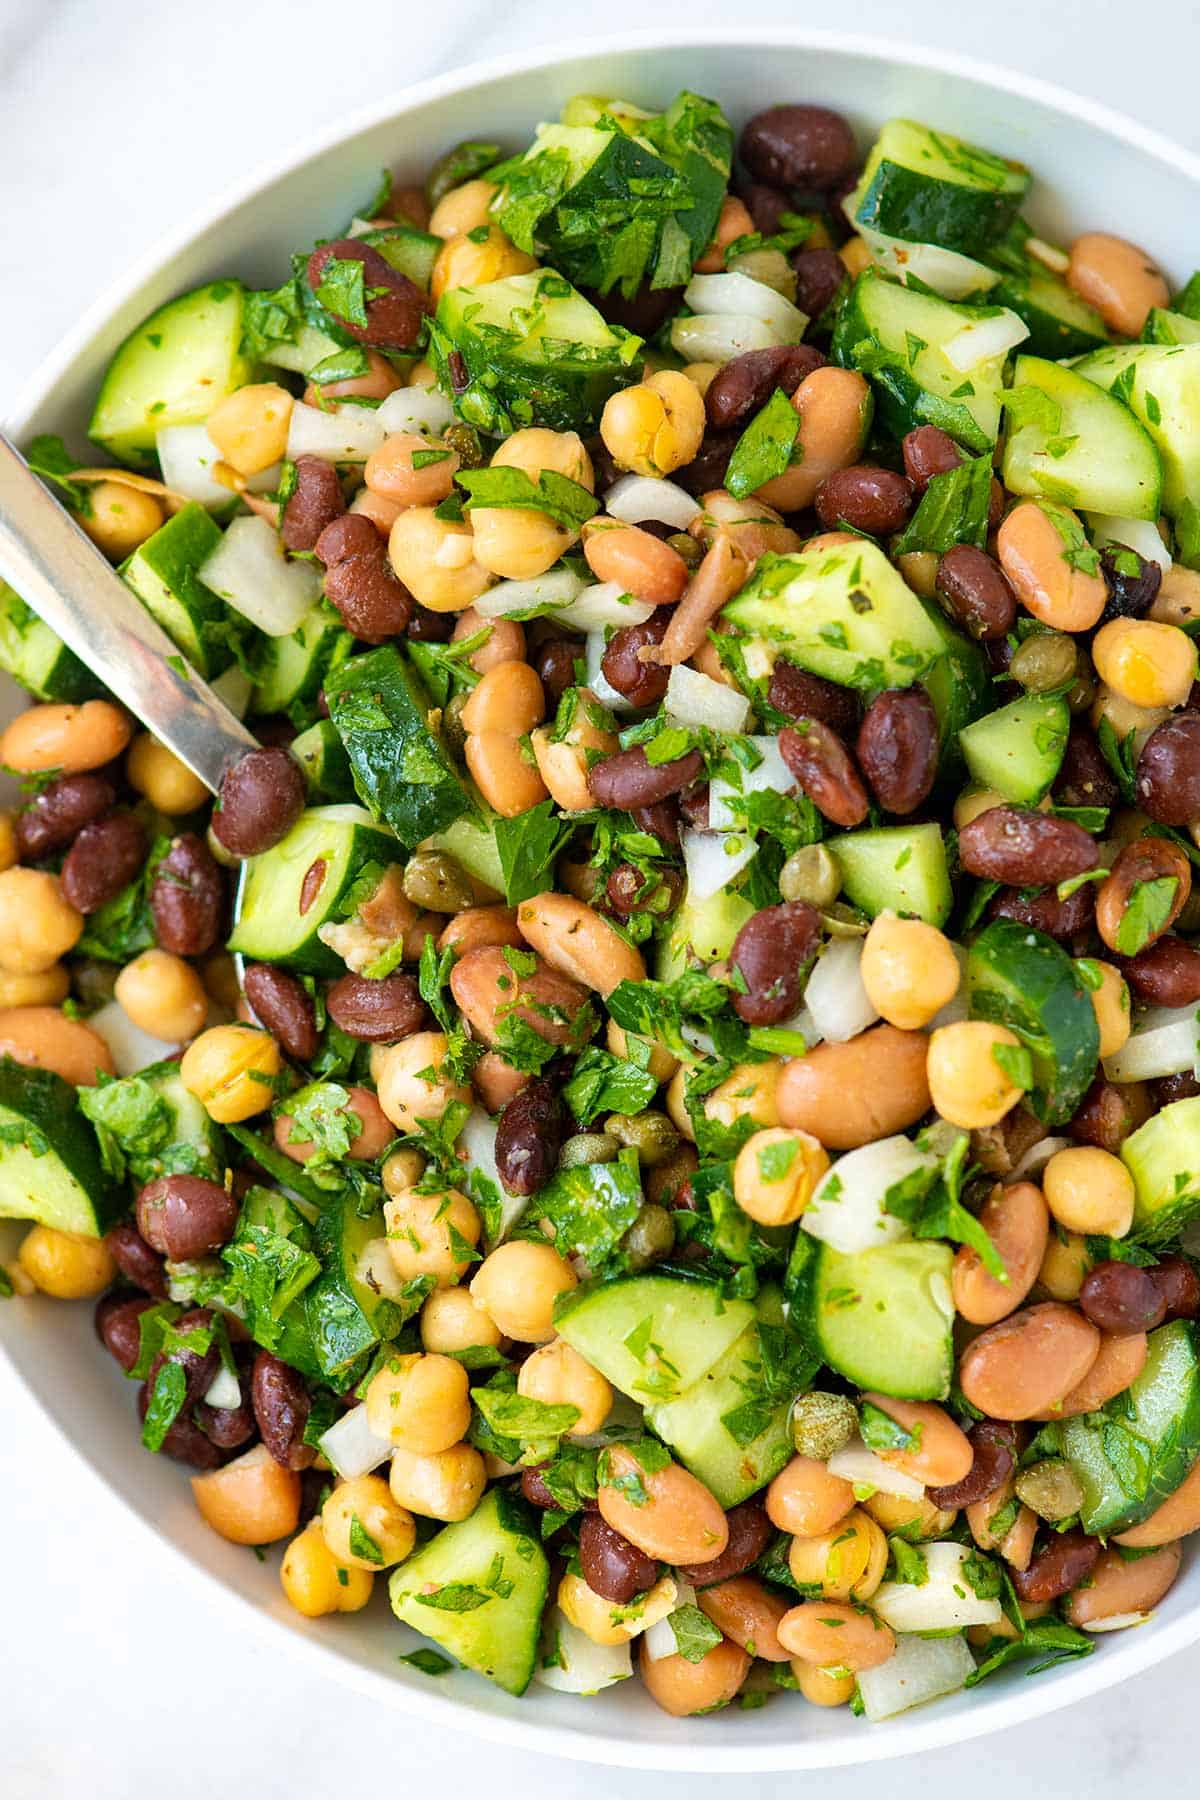 Salad with beans, cucumbers, onion, and parsley